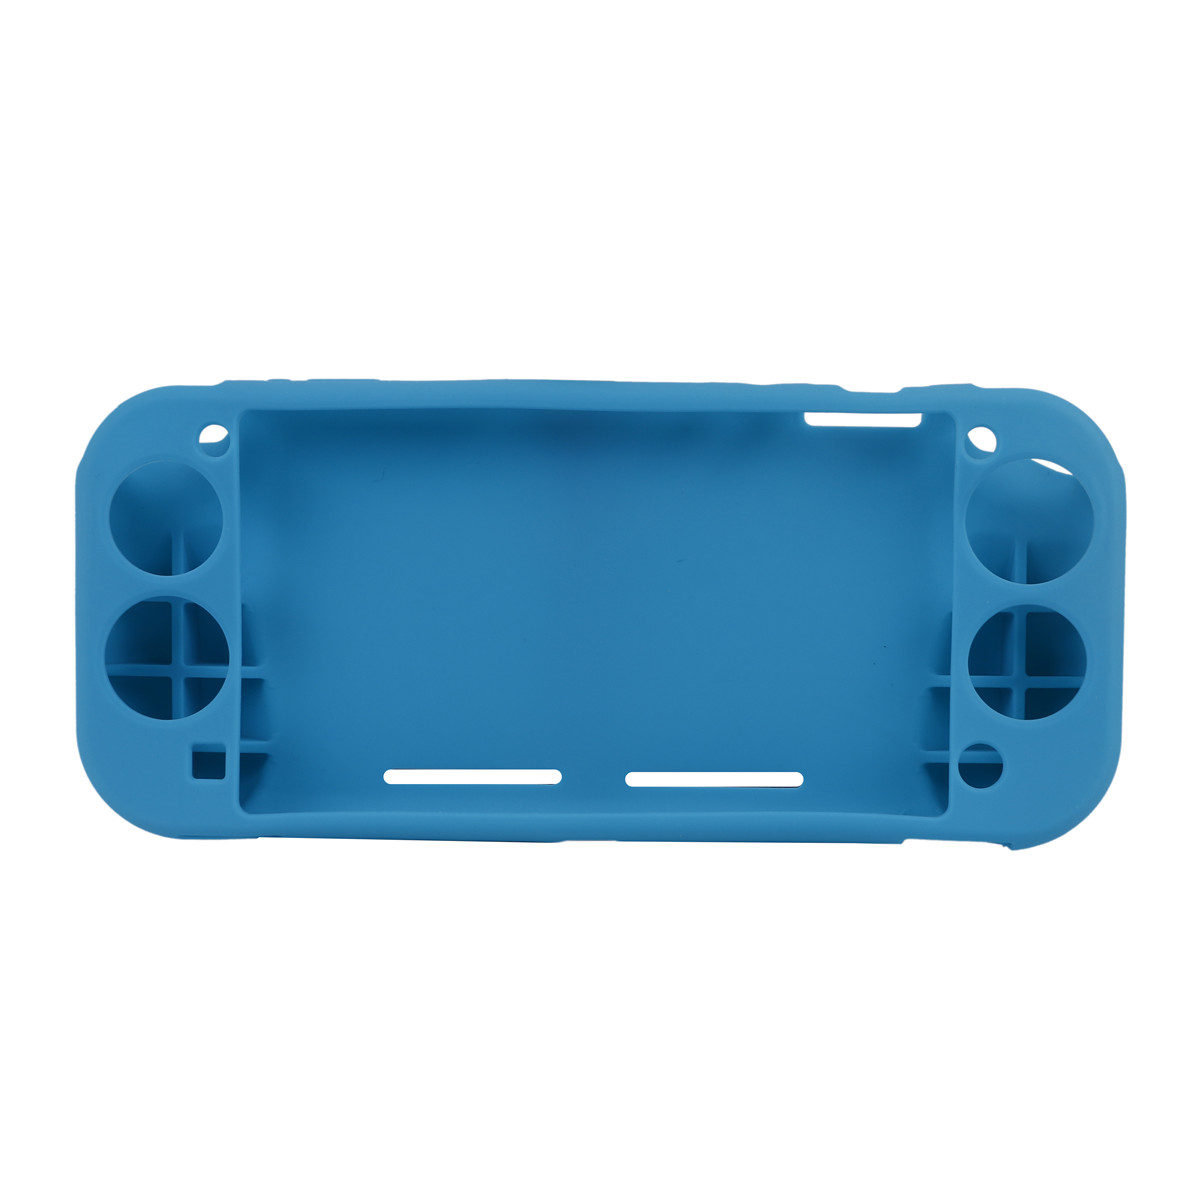 Shockproof Silicone Soft Case Protective Cover for Nintendo Switch Lite Game Console 14